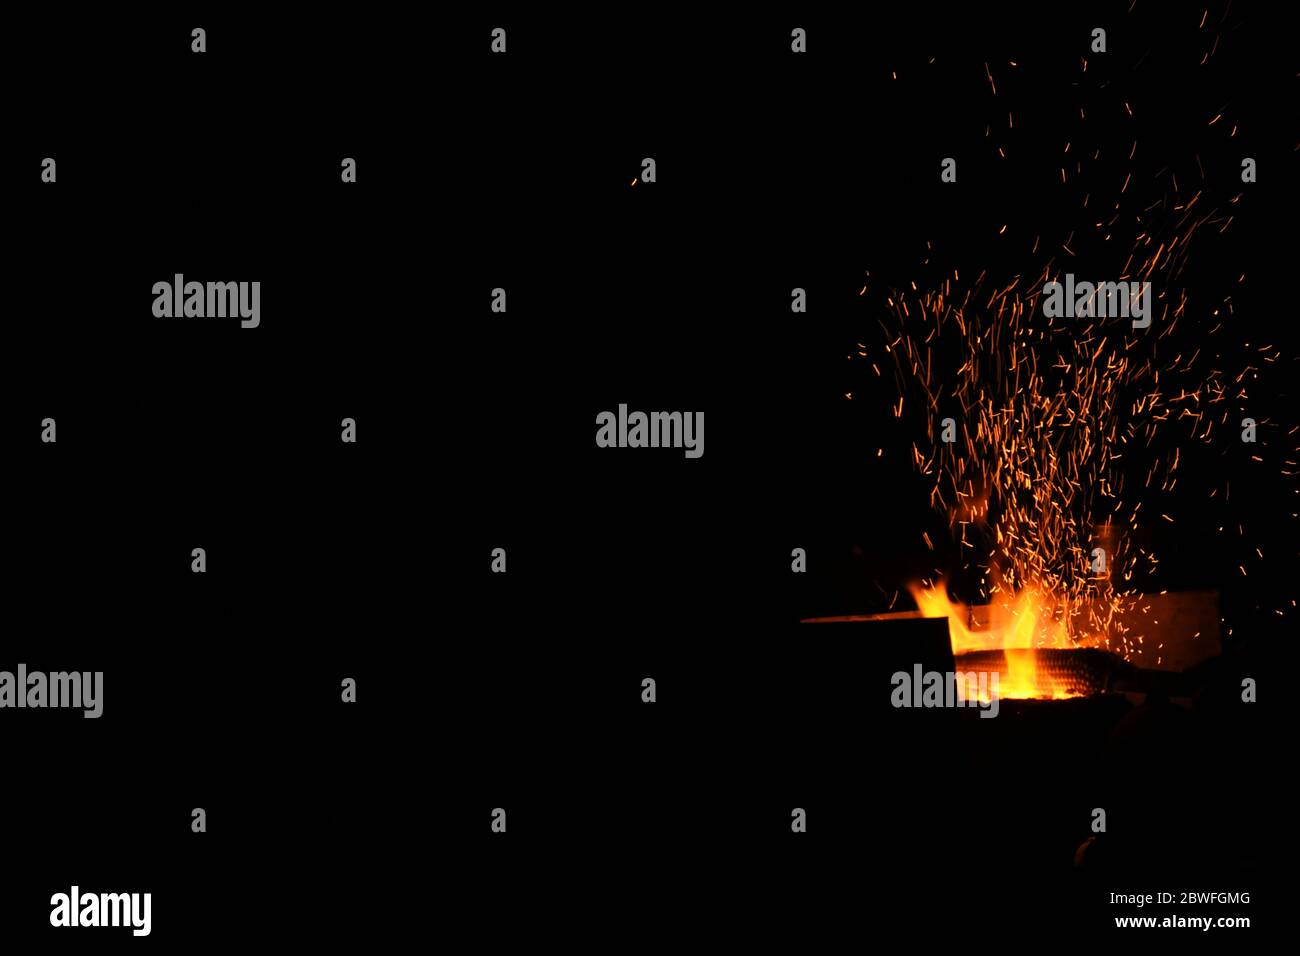 Amazing Sparks in the Dark. Beautiful abstract background on the theme of fire, light and life. Sparks fly in the sky Stock Photo